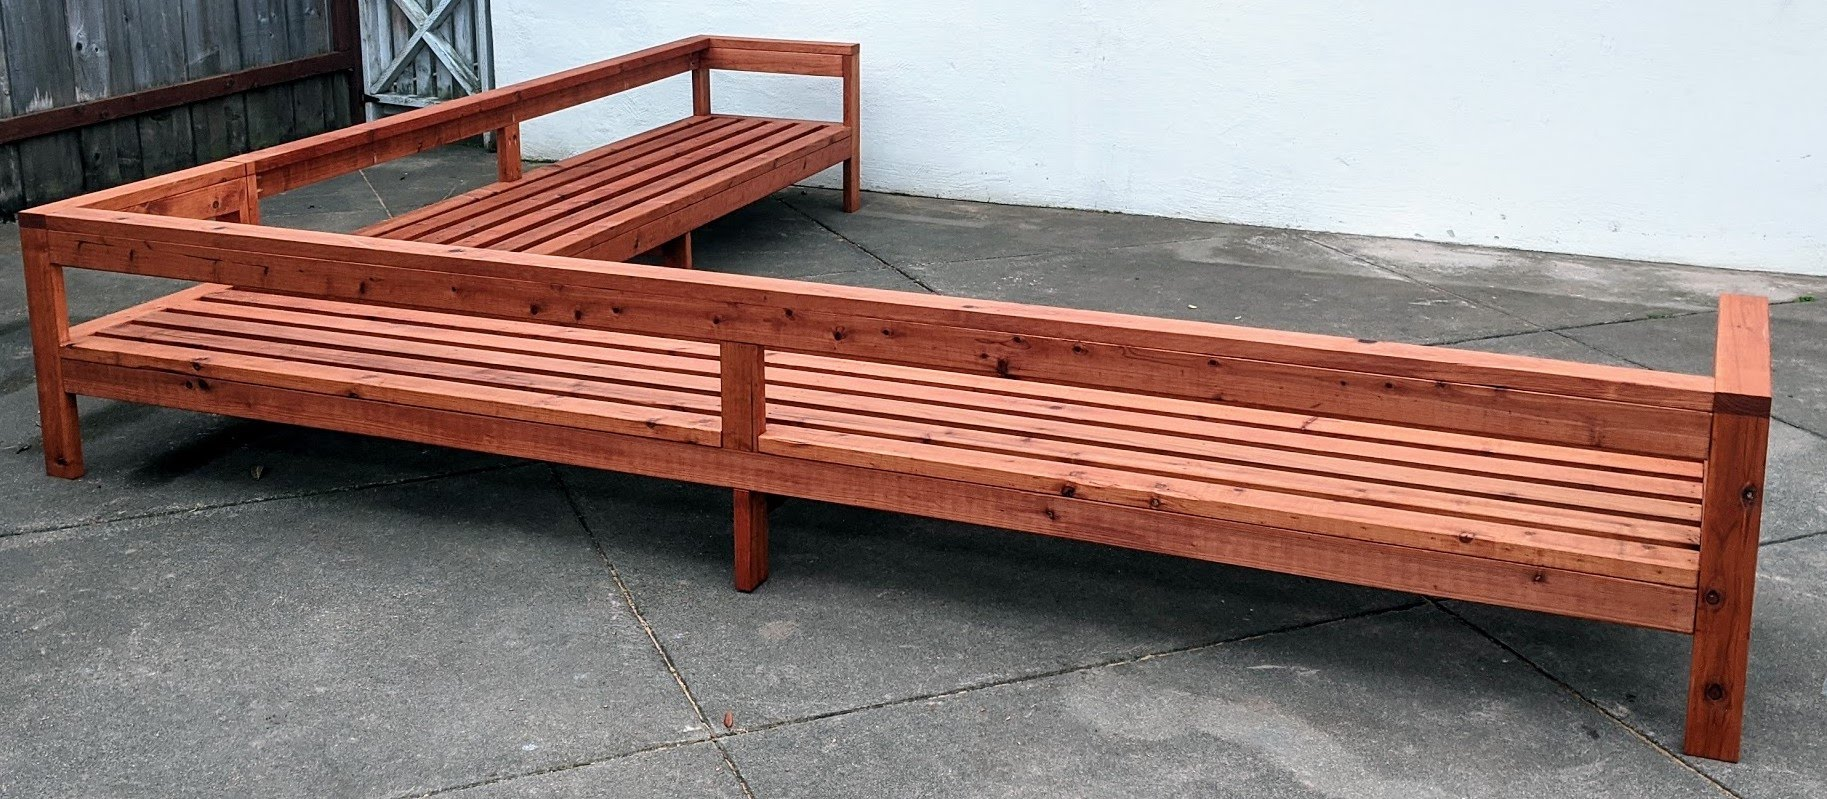 2x4 outdoor furniture